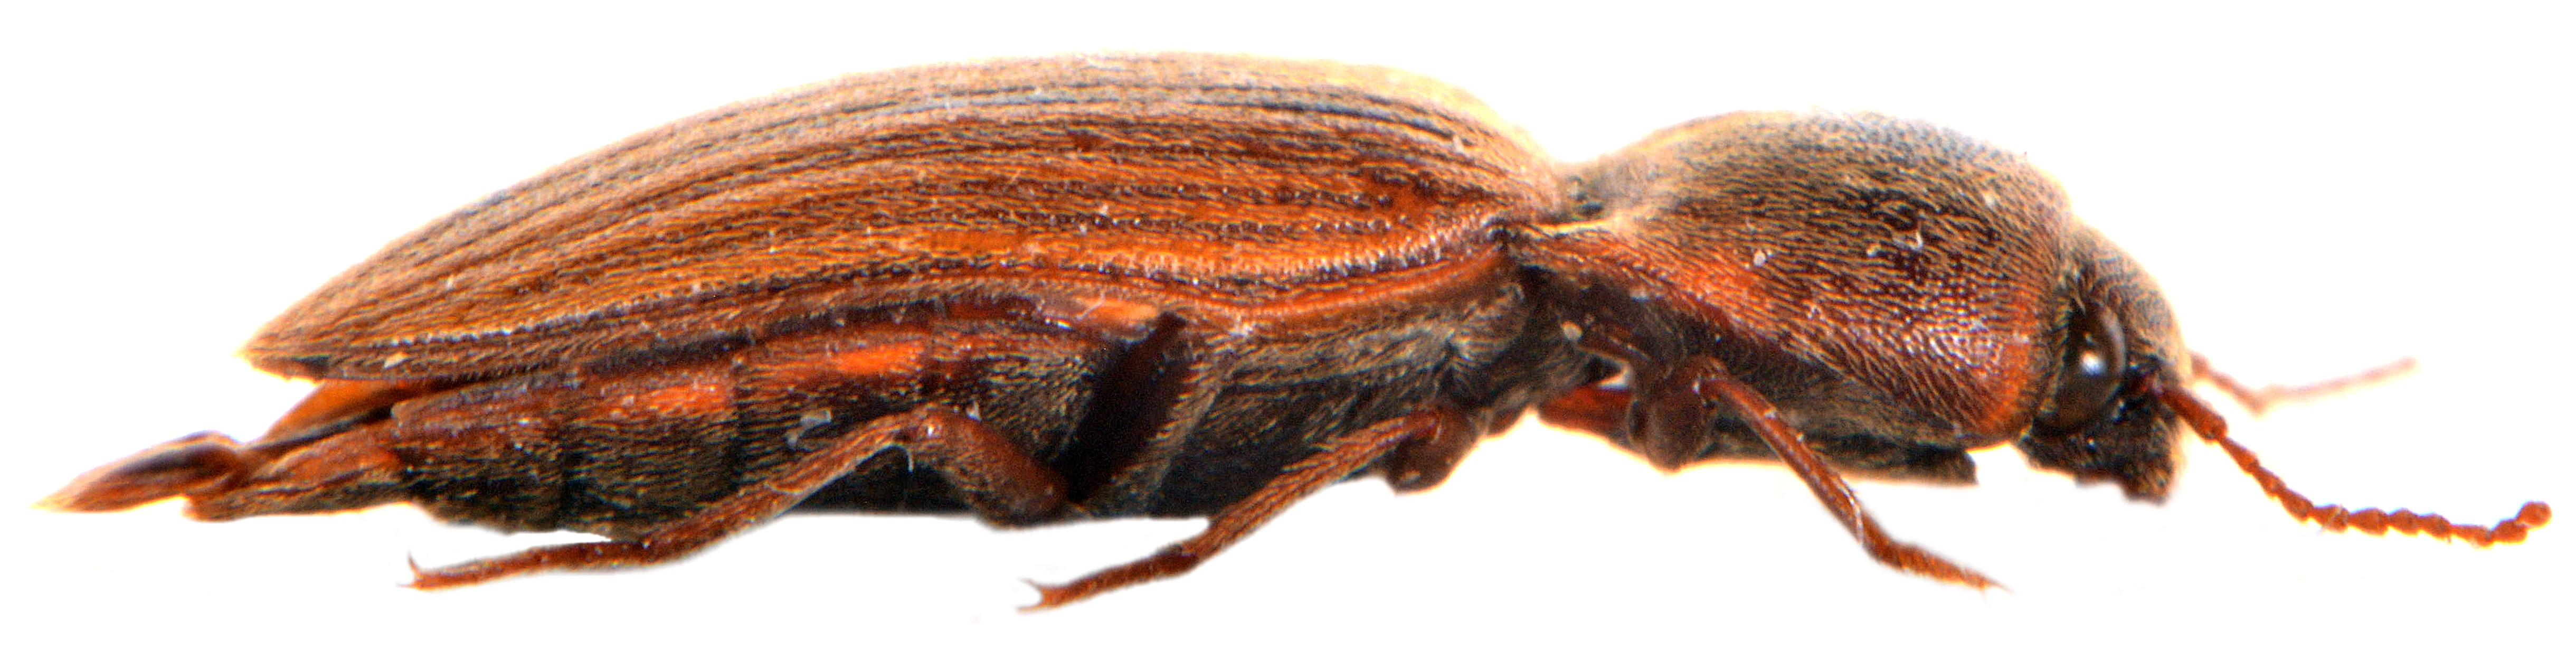 Agriotes lineatus 4